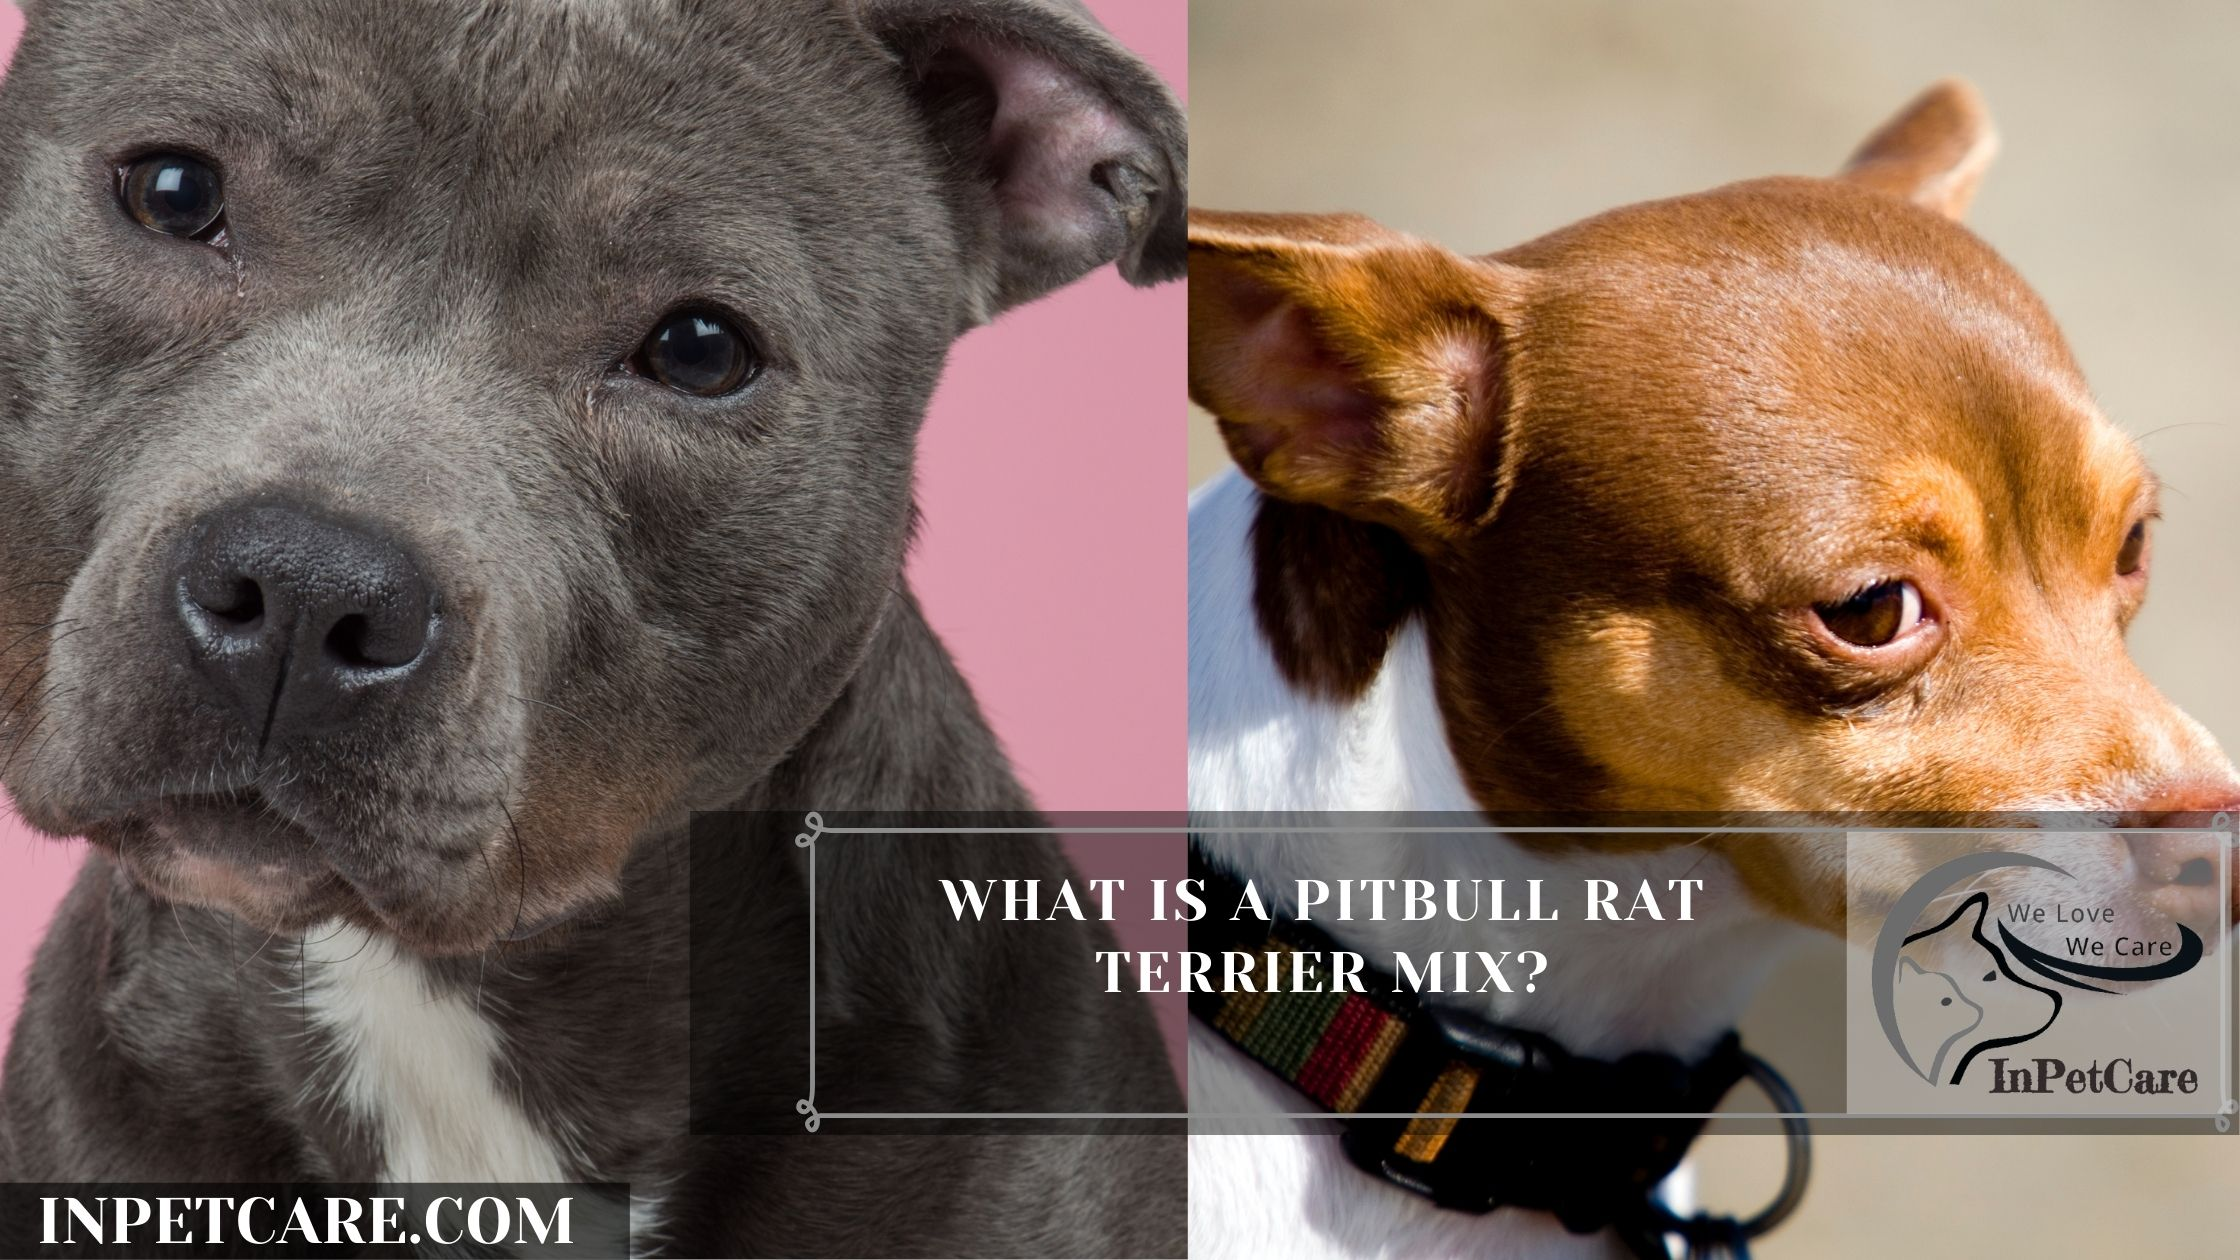 What Is A Pitbull Rat Terrier Mix?